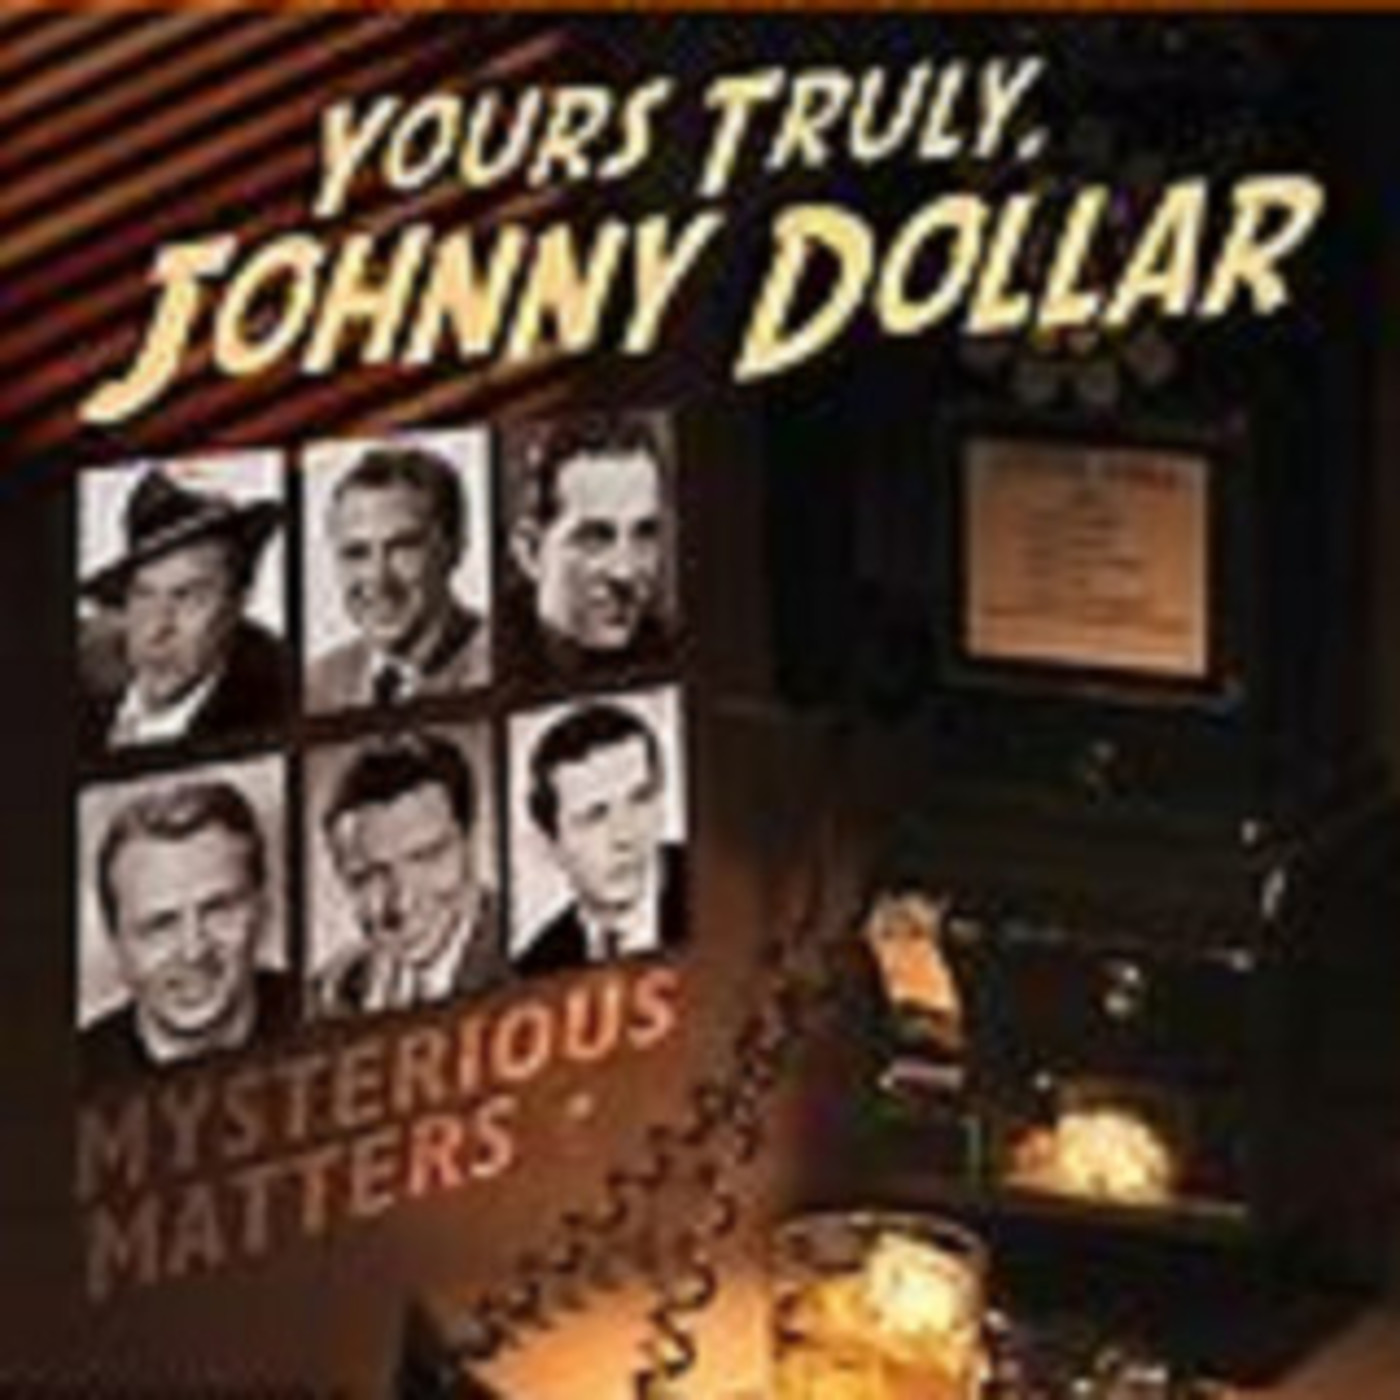 Yours Truly, Johnny Dollar - 093062, episode 811 - The Tip-Off Matter